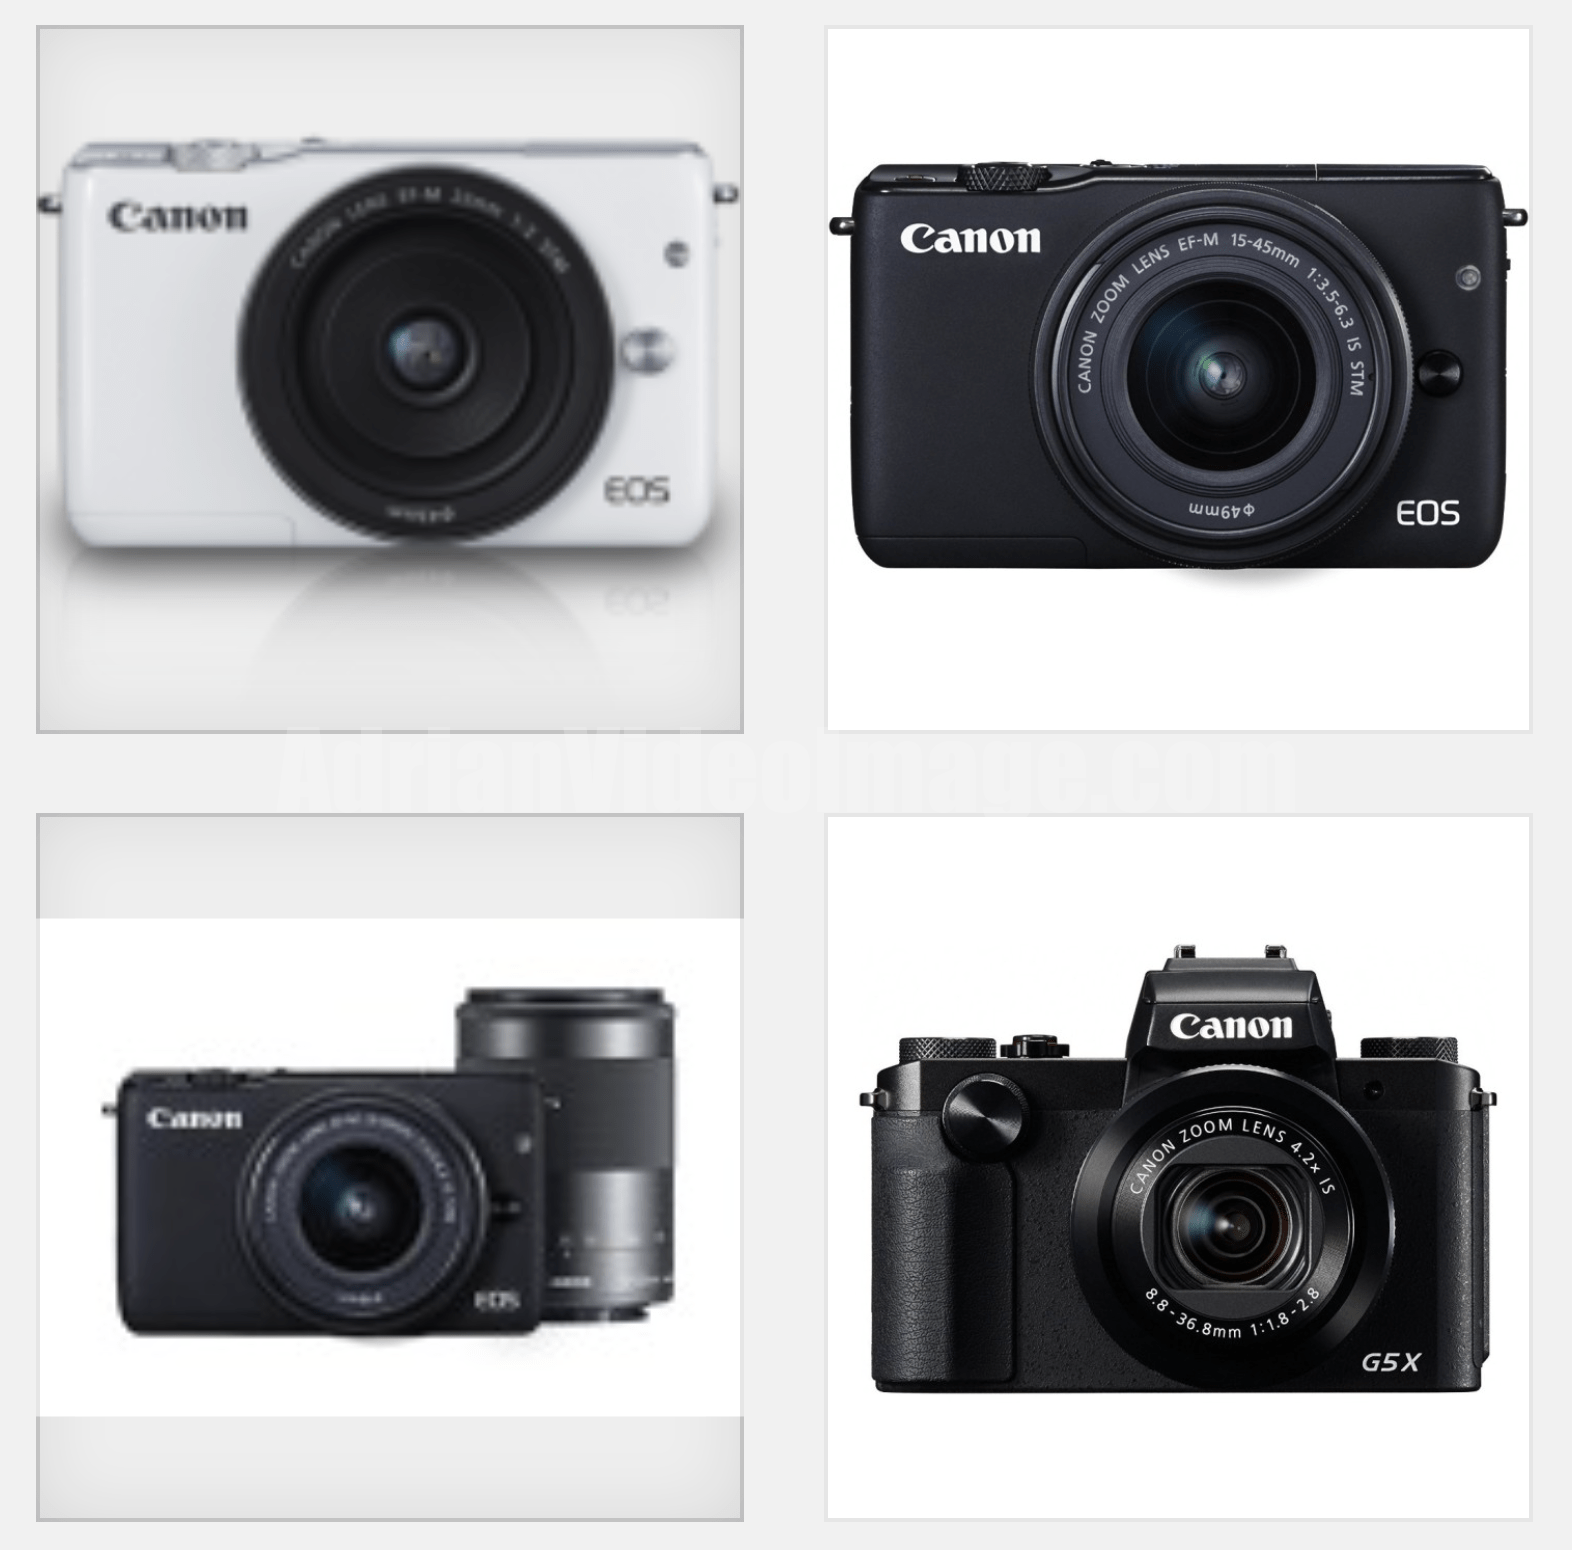 New Canon Digital Camera Models 2015 Price – G9X, G5X, EOS M10